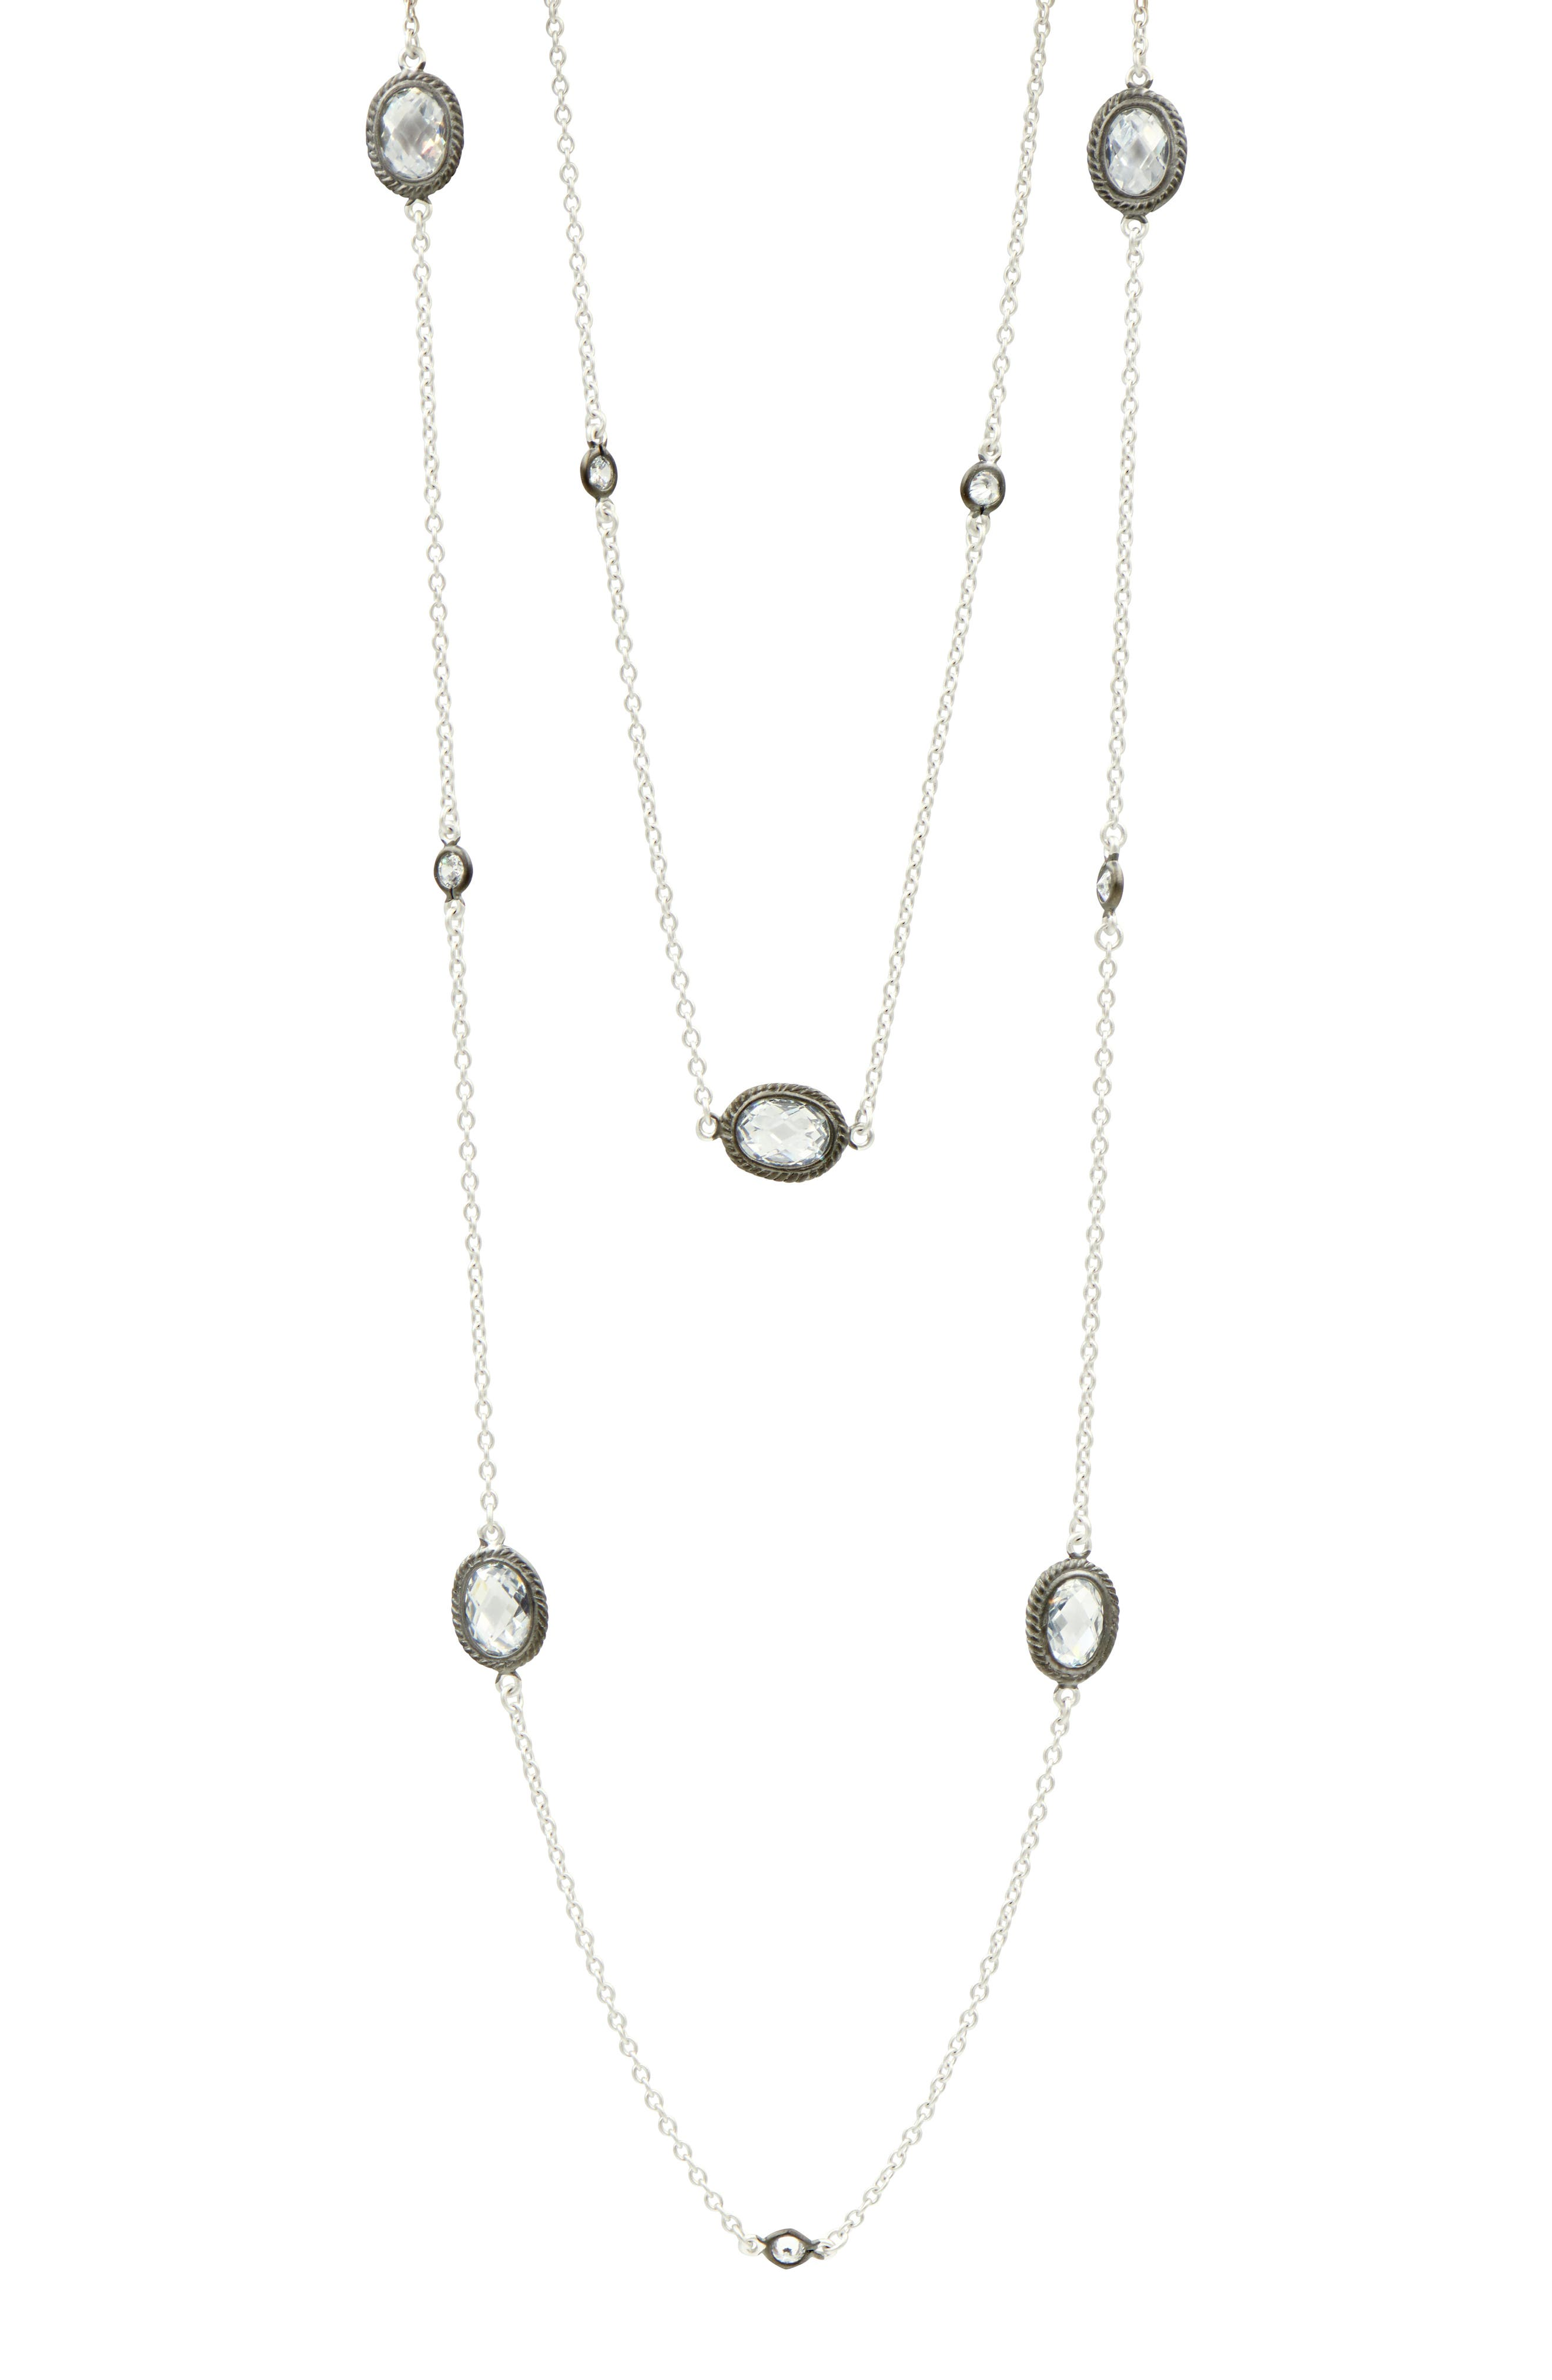 Signature Raindrop Station Necklace,                             Alternate thumbnail 2, color,                             Black/ Silver